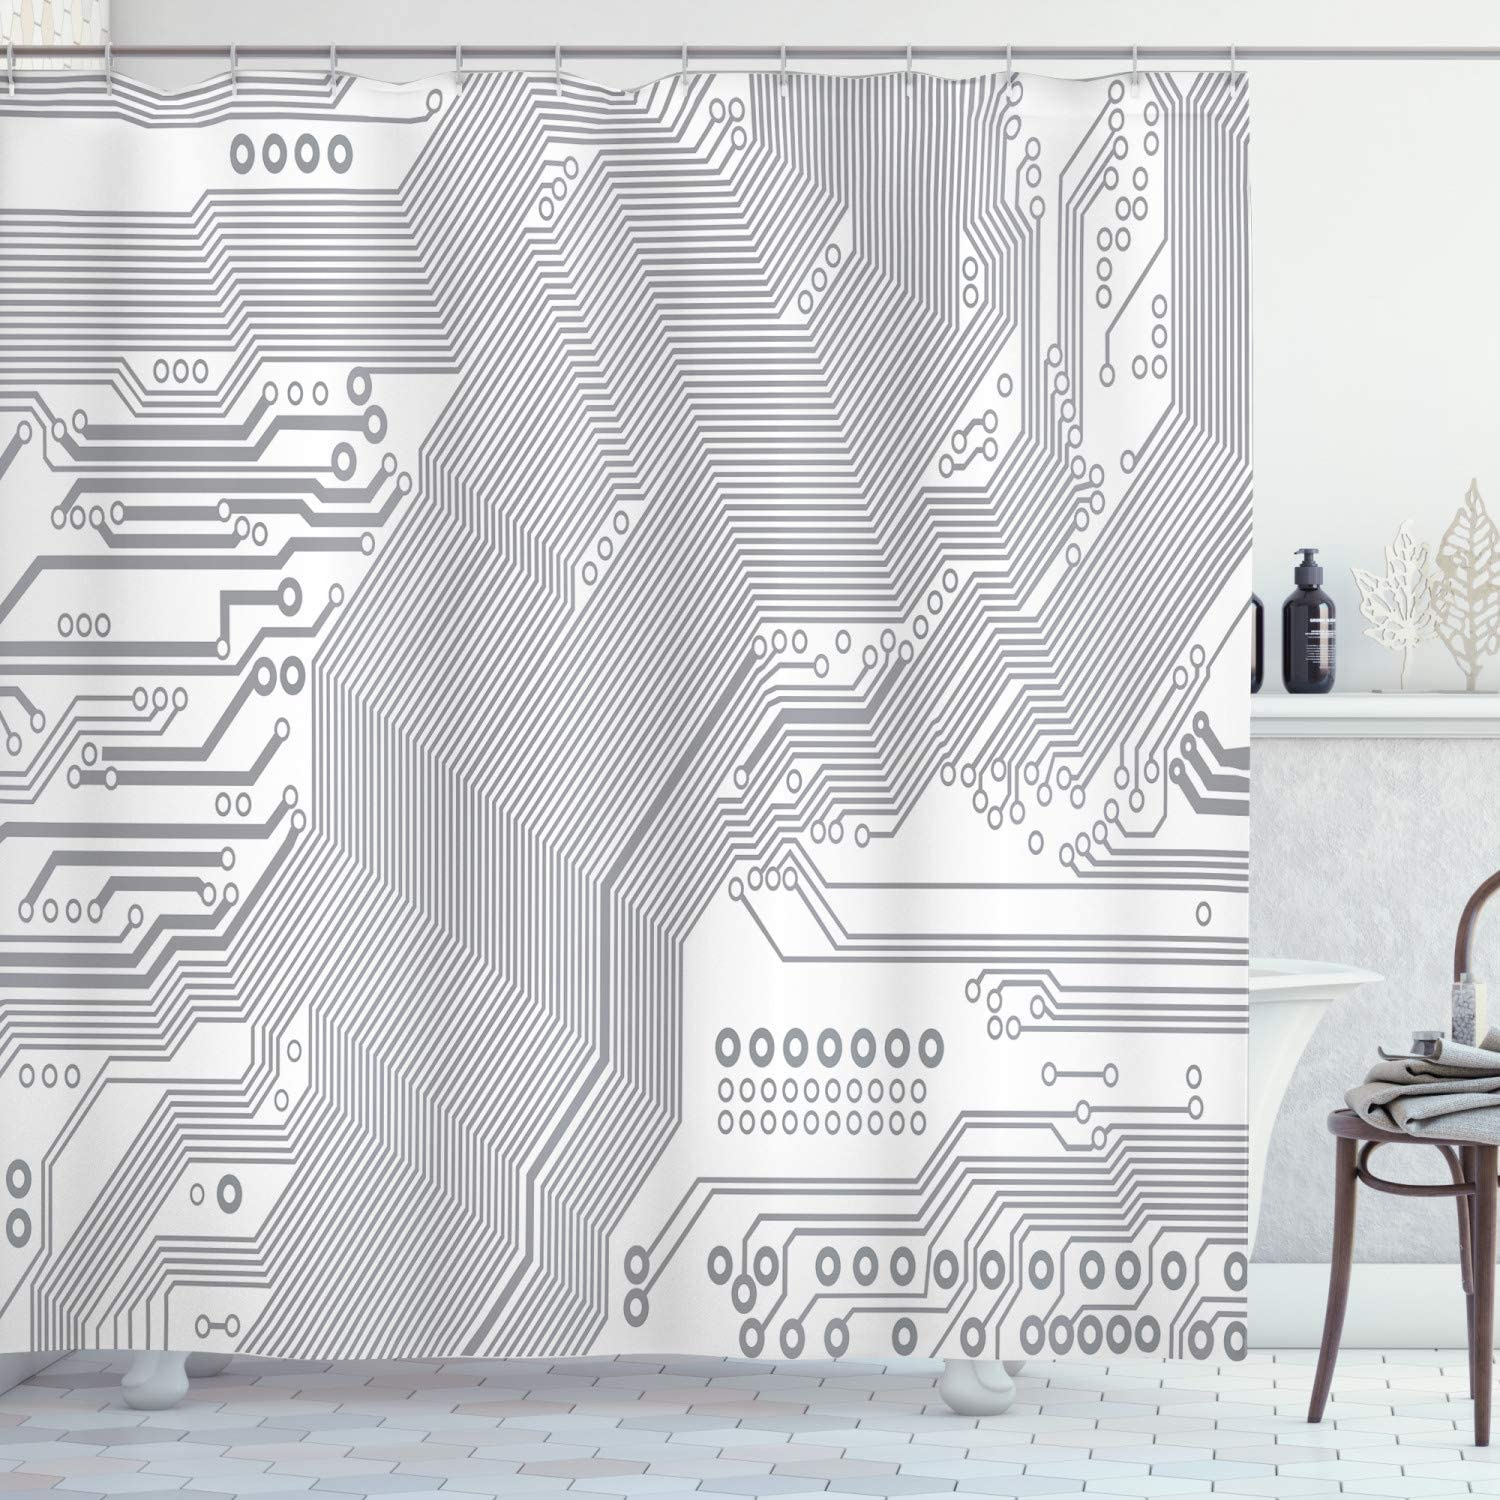 Ambesonne Digital Shower Curtain, Computer Motherboard Electronic Hardware Technical Display Futuristic Plan Design, Cloth Fabric Bathroom Decor Set with Hooks, 84